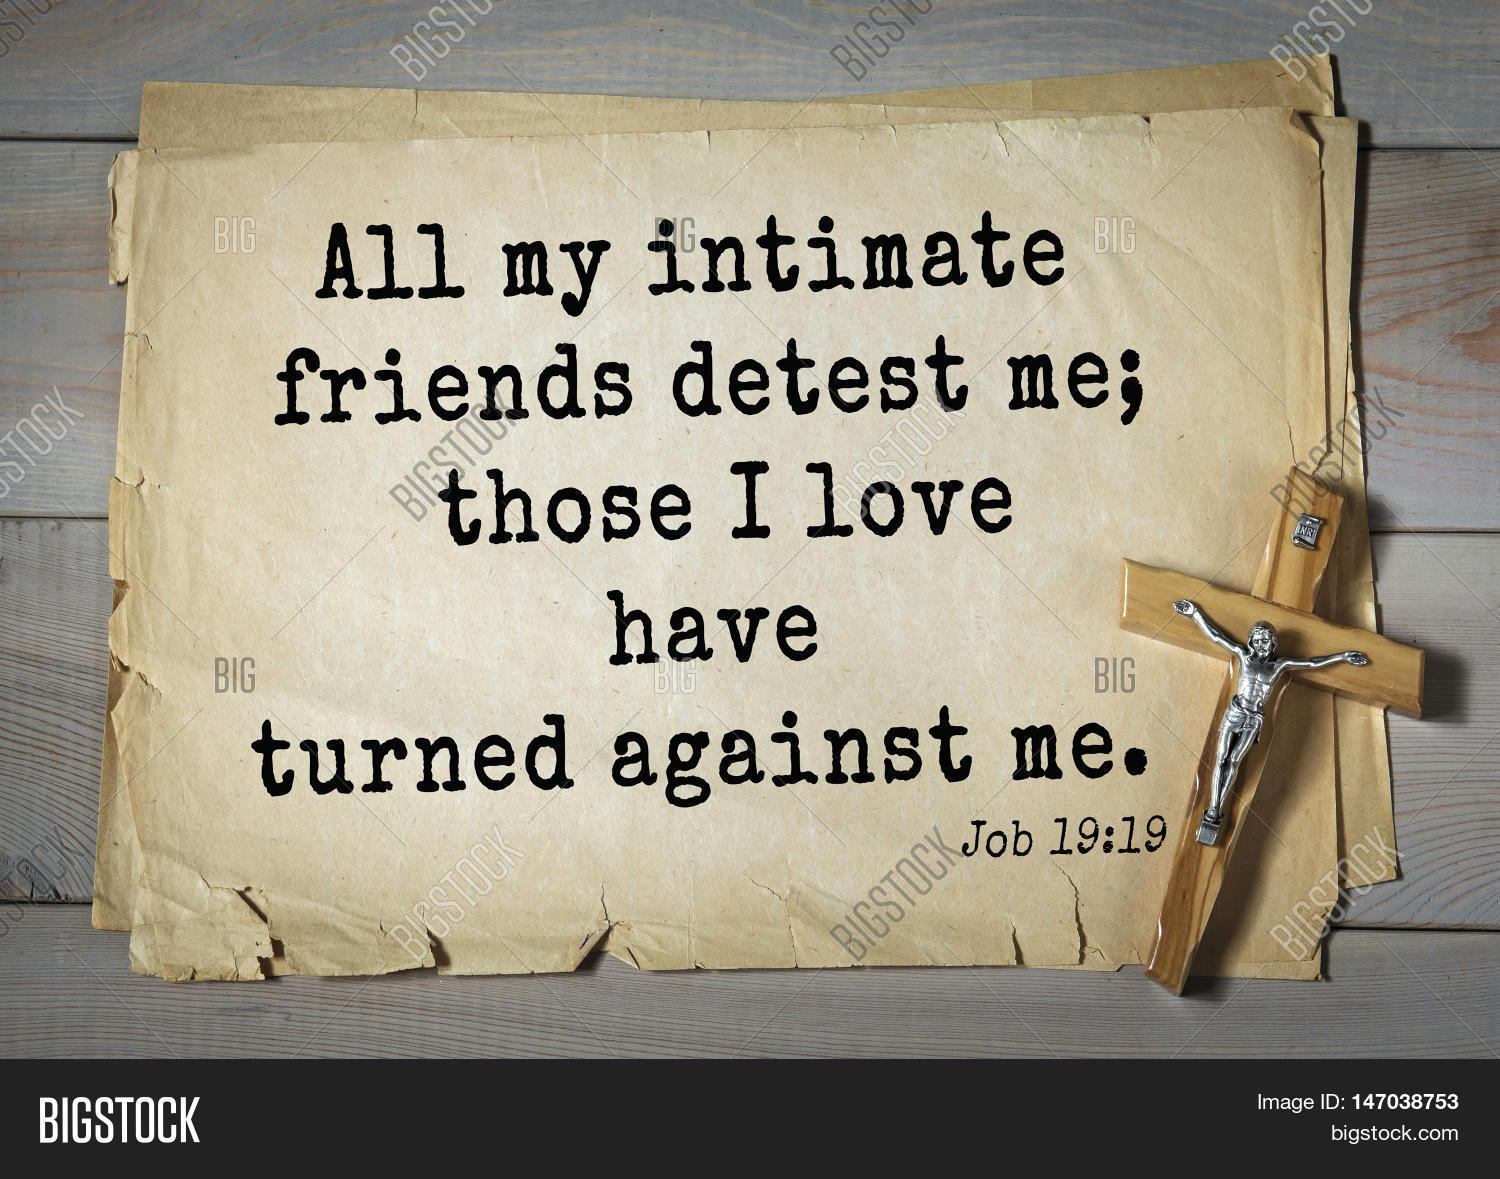 bible verses about loving friends